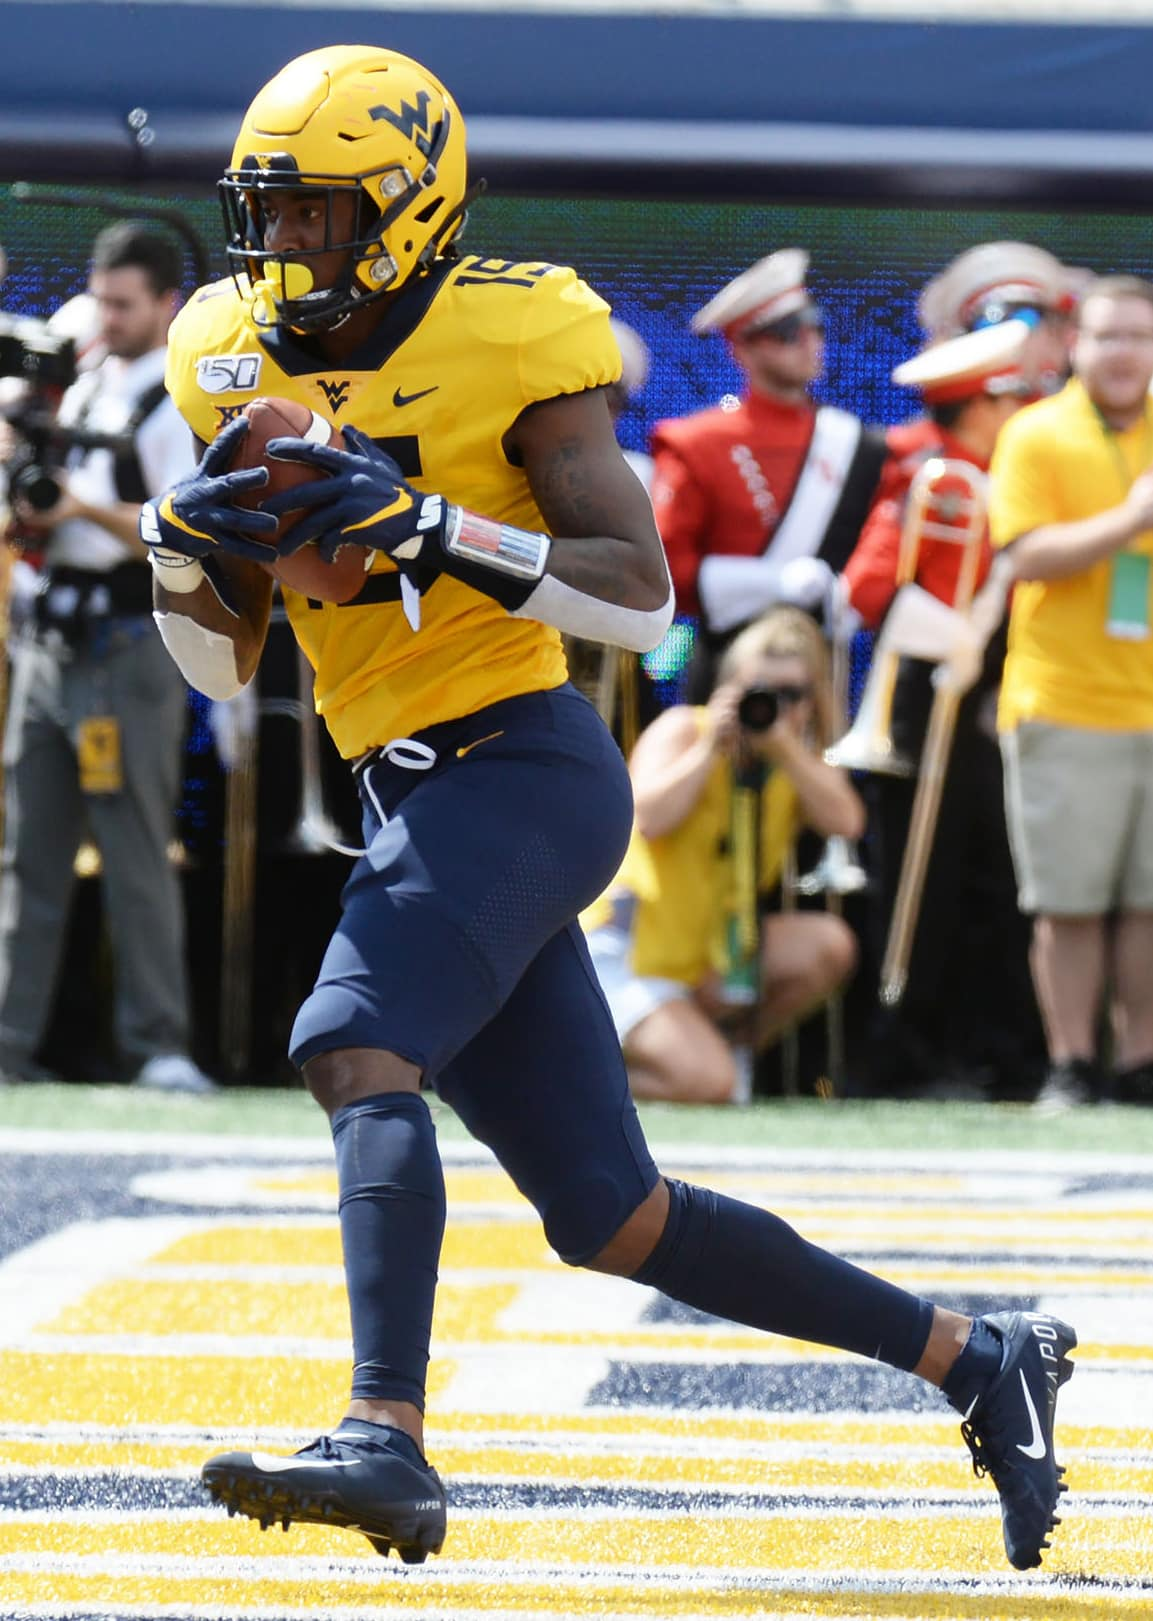 West Virginia receiver George Campbell scores on a touchdown reception